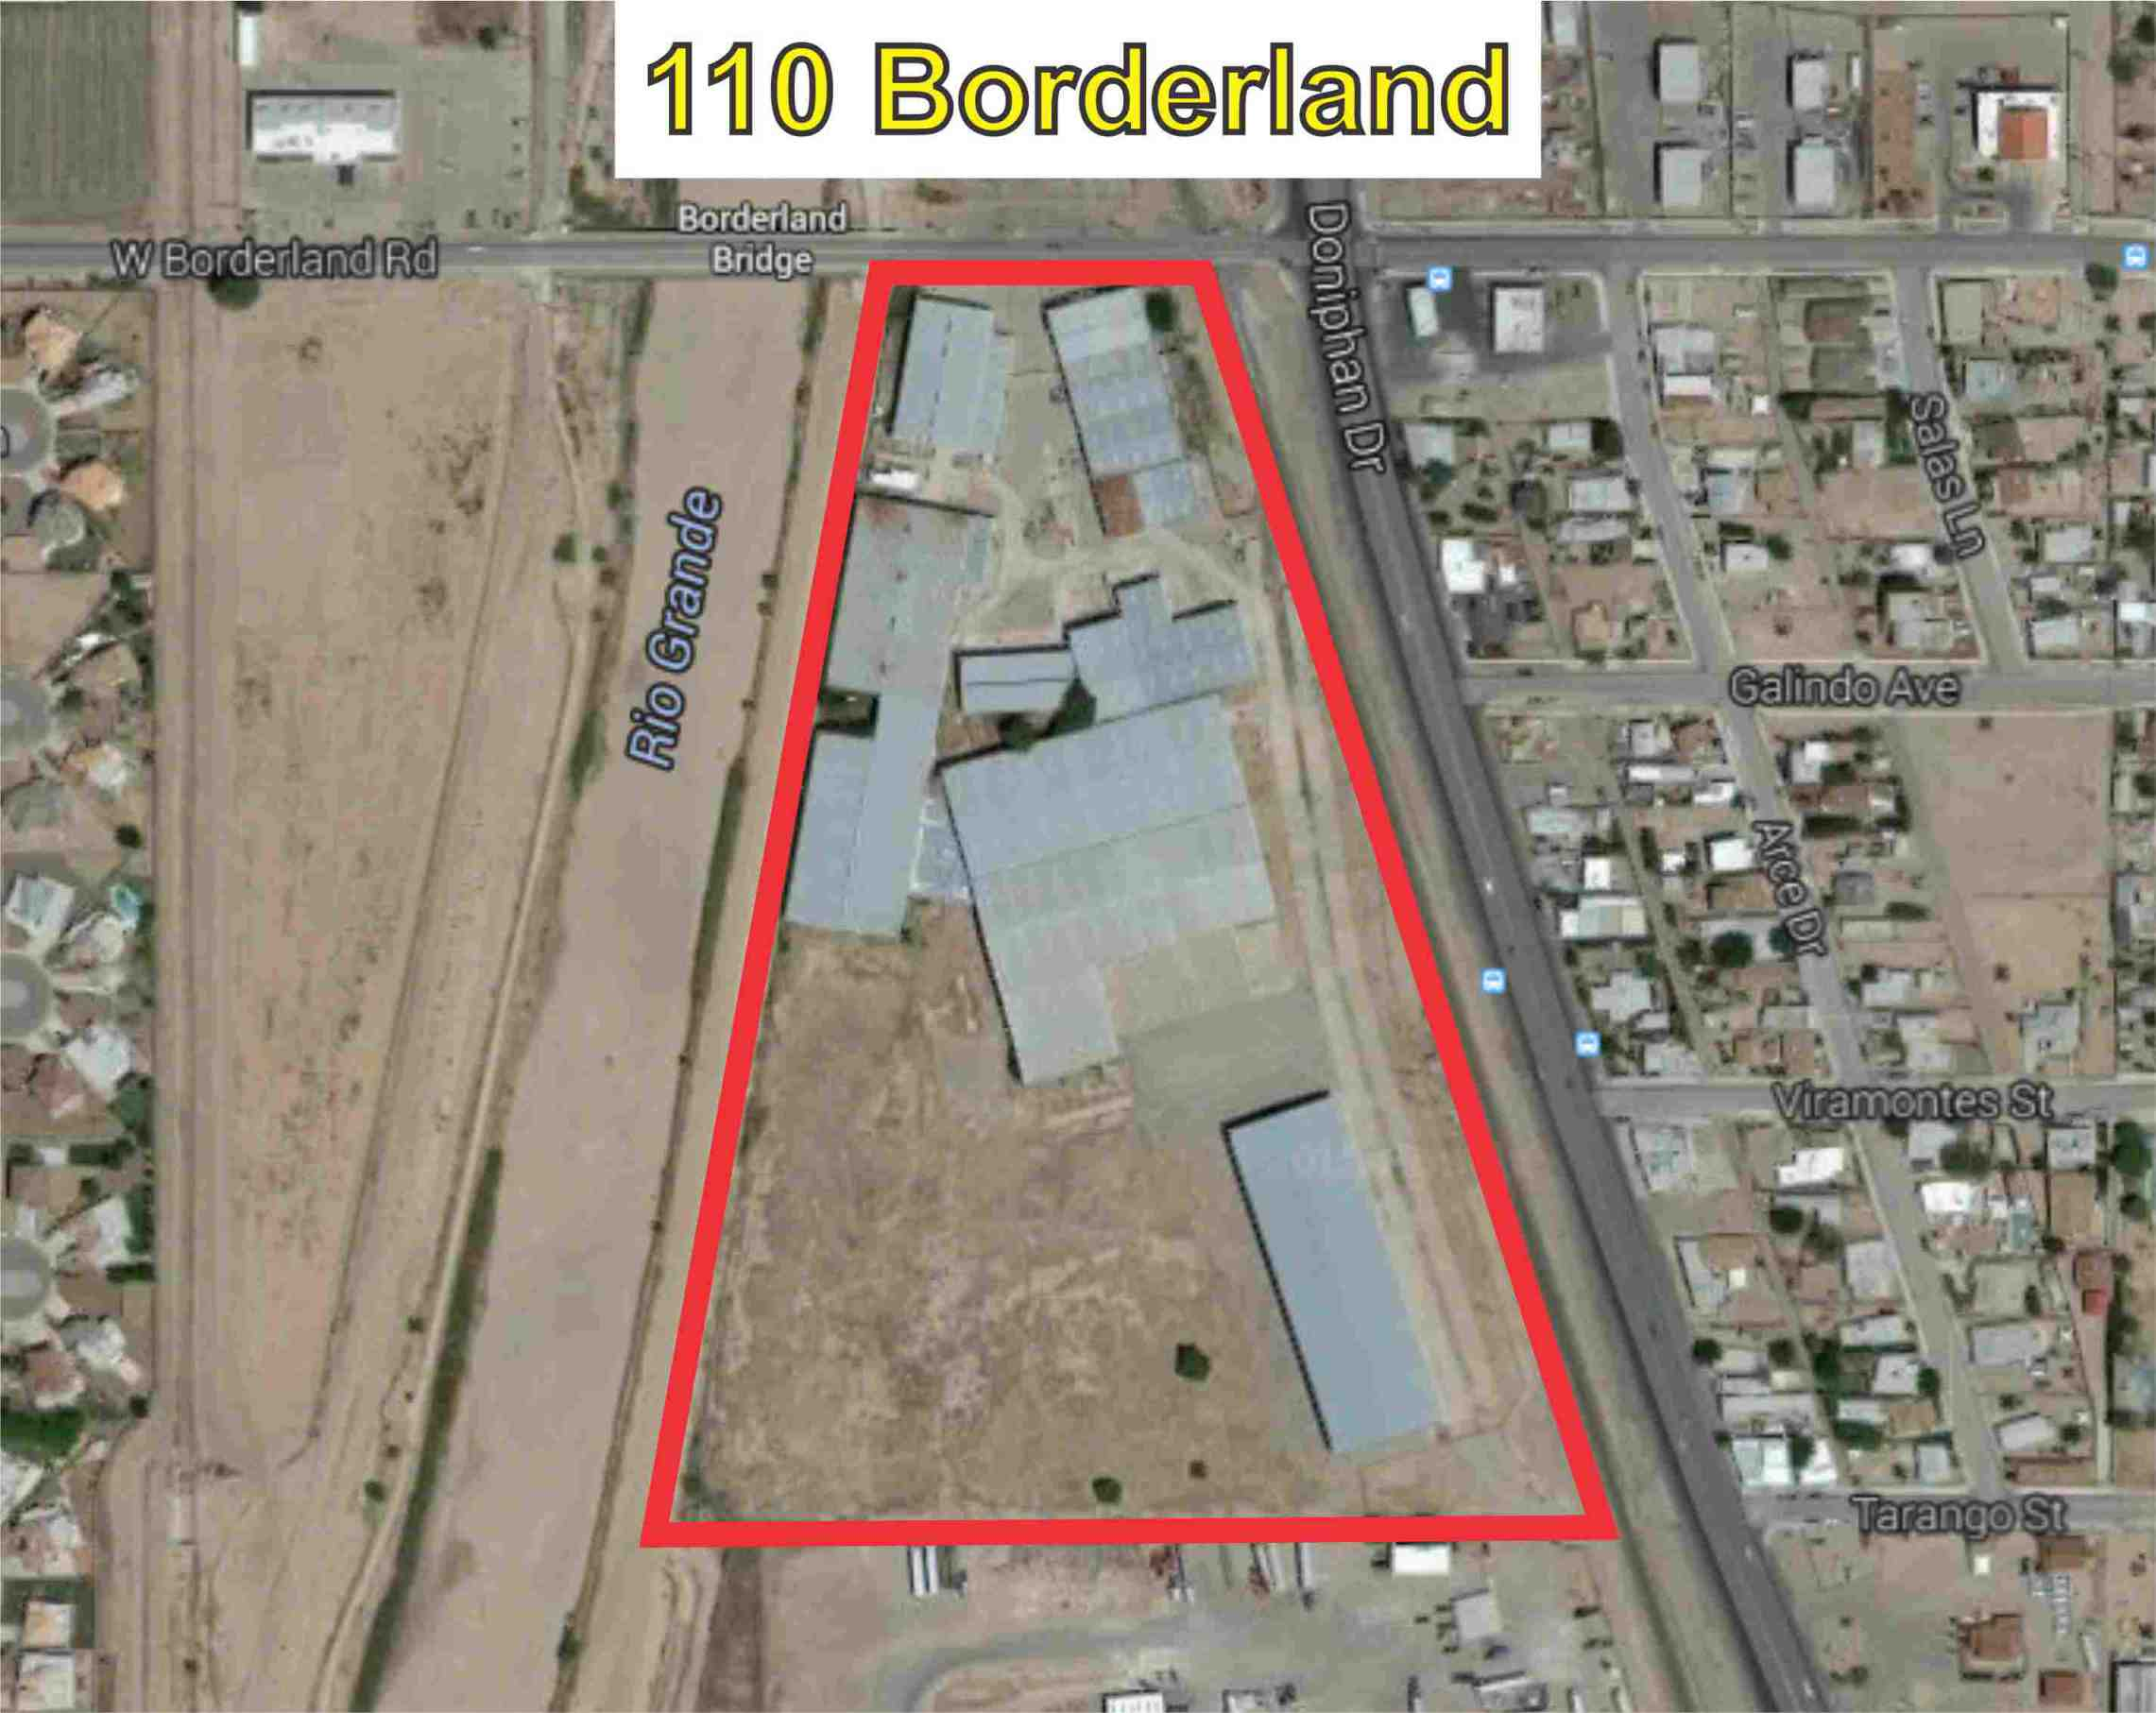 Great Location, close to Santa Teresa - San Geronimo International Bridge. 18.64 acres of land. Formally Tre-Pol Inc. Could be sold by warehouse or in full. Tract 7F, 7G, 7G1 and 7H3, Block 12, UPPER VALLEY SURVEYS, in El Paso County, Texas, according to a resurvey of said UPPER VALLEY SURVEYS made by El Paso County , Texas for tax purposes; being the same property conveyed by Warranty Deed, dated, January 1, 2007, recorded under Clerk' s File No. 20070010480, Real Property Records, El Paso County, Texas, municipally known and numbered as 110 W. Borderland Road, El Paso, Texas.